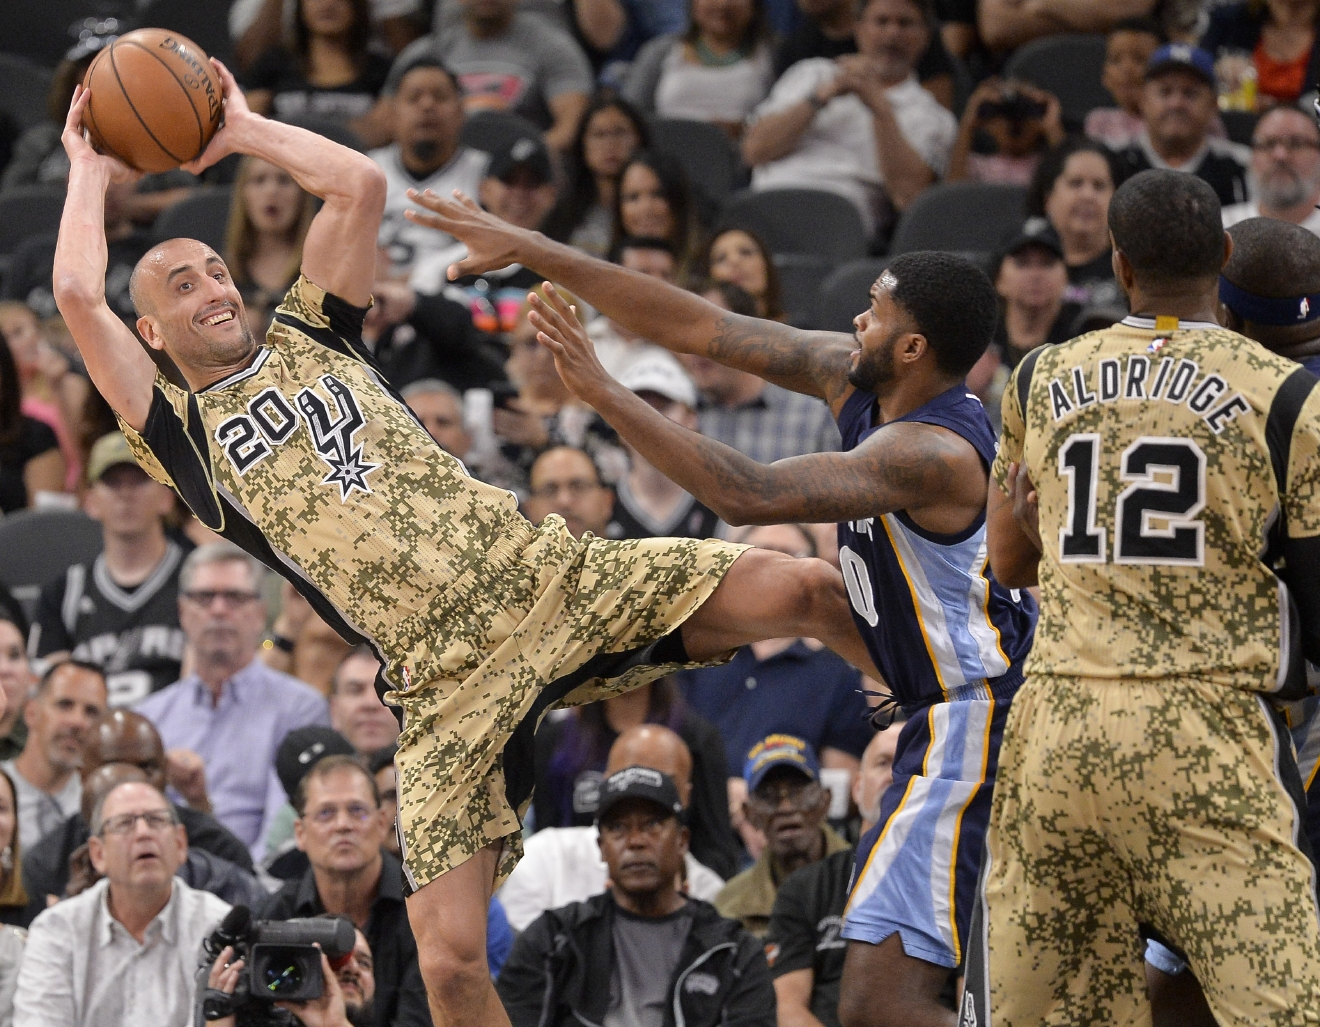 San Antonio Spurs guard Manu Ginobili (20), of Argentina, looks to pass to forward LaMarcus Aldridge (12) as he is defended by Memphis Grizzlies forward Troy Daniels (30) during the first half of an NBA basketball game, Thursday, March 23, 2017, in San Antonio. (AP Photo/Darren Abate)